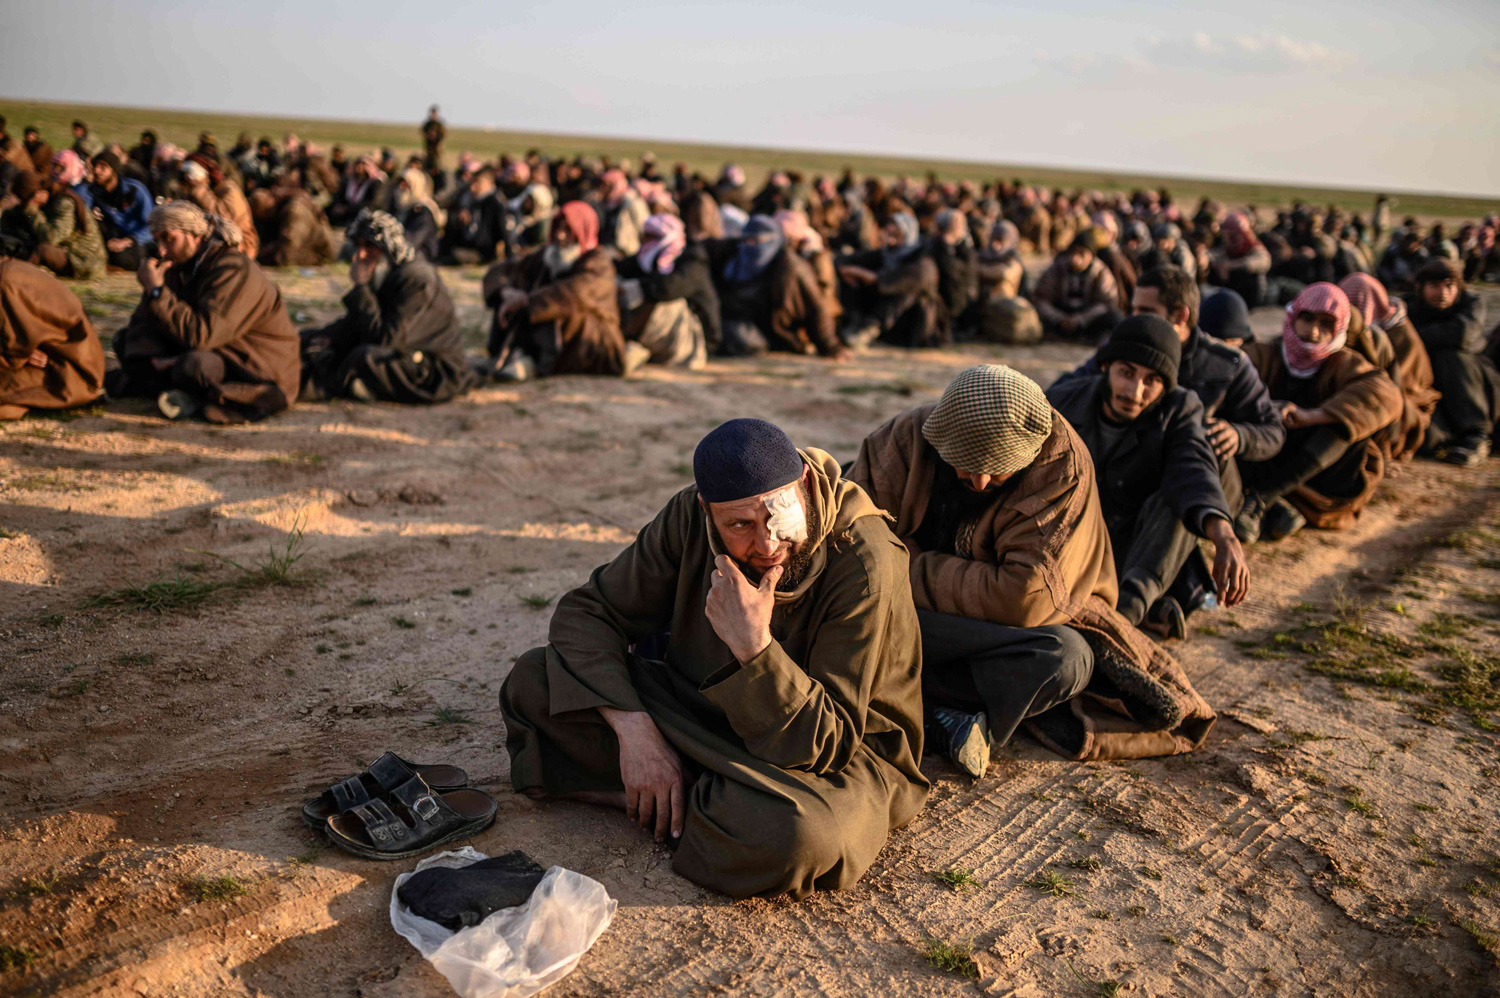 Concerns over foreign ISIS members in Al Hol camp